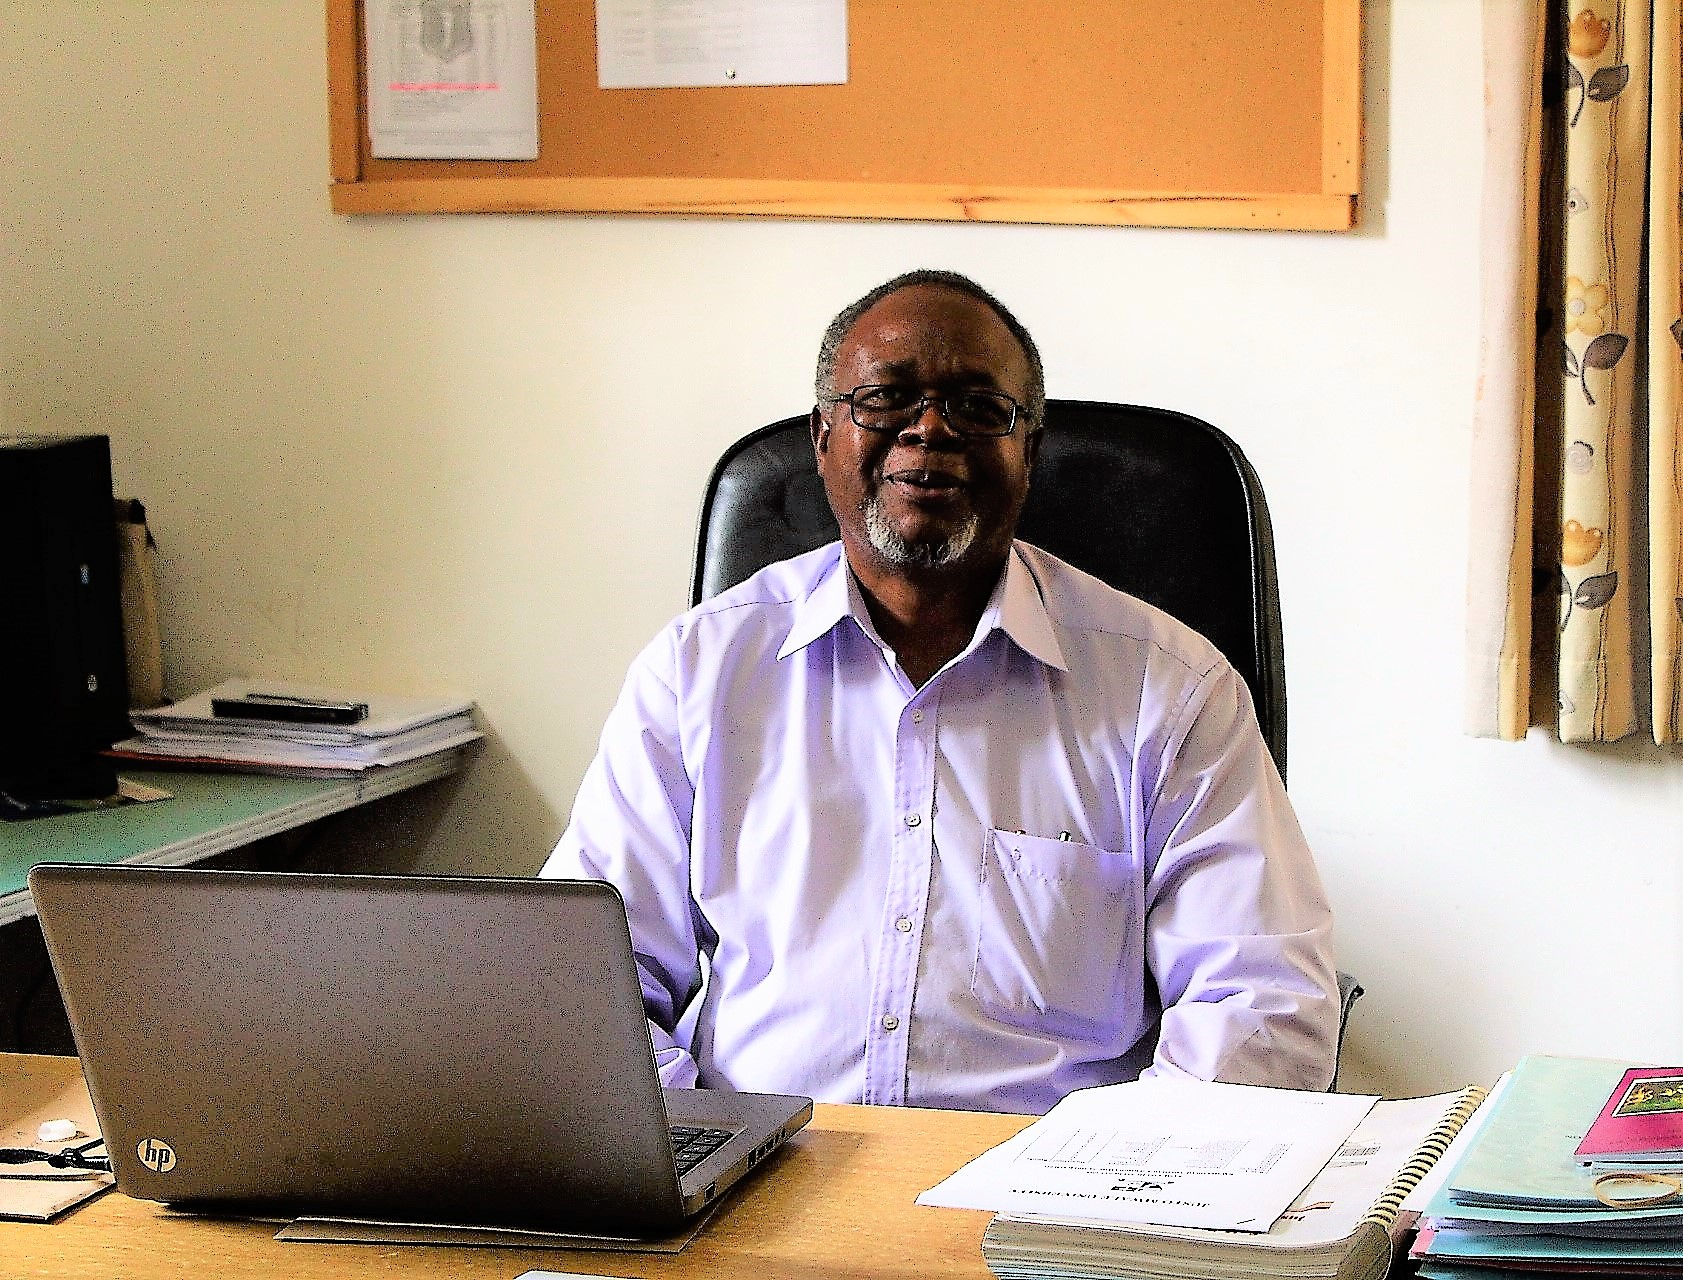 Dr. Chilenje in his office at Justo Mwale University, where he is now serving as Deputy Registrar, Academic Affairs.